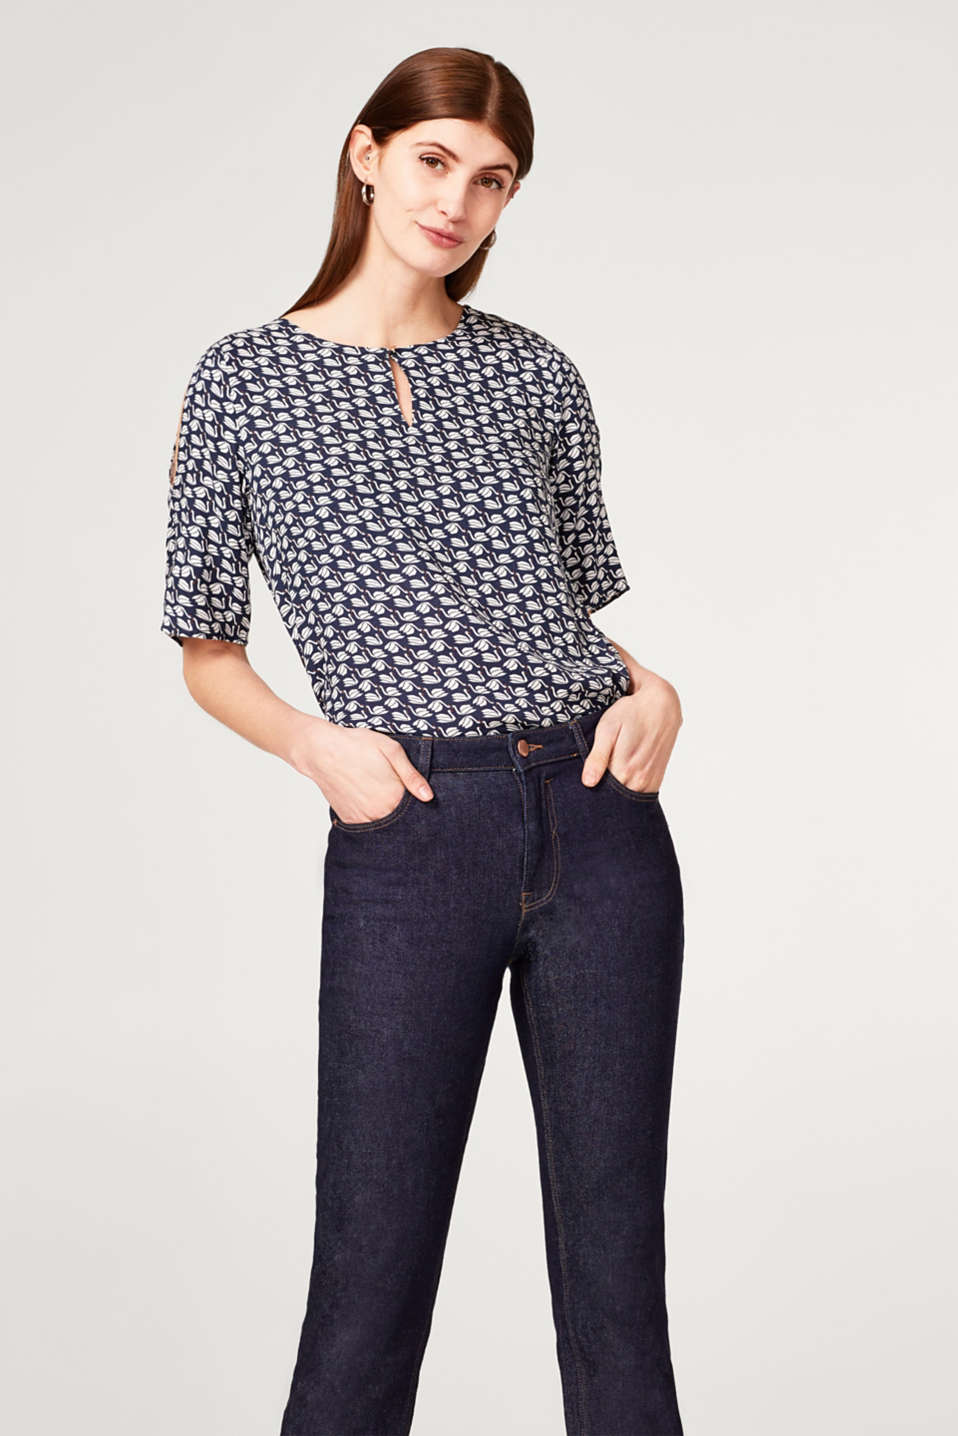 Esprit - Lightweight printed blouse with slit sleeves